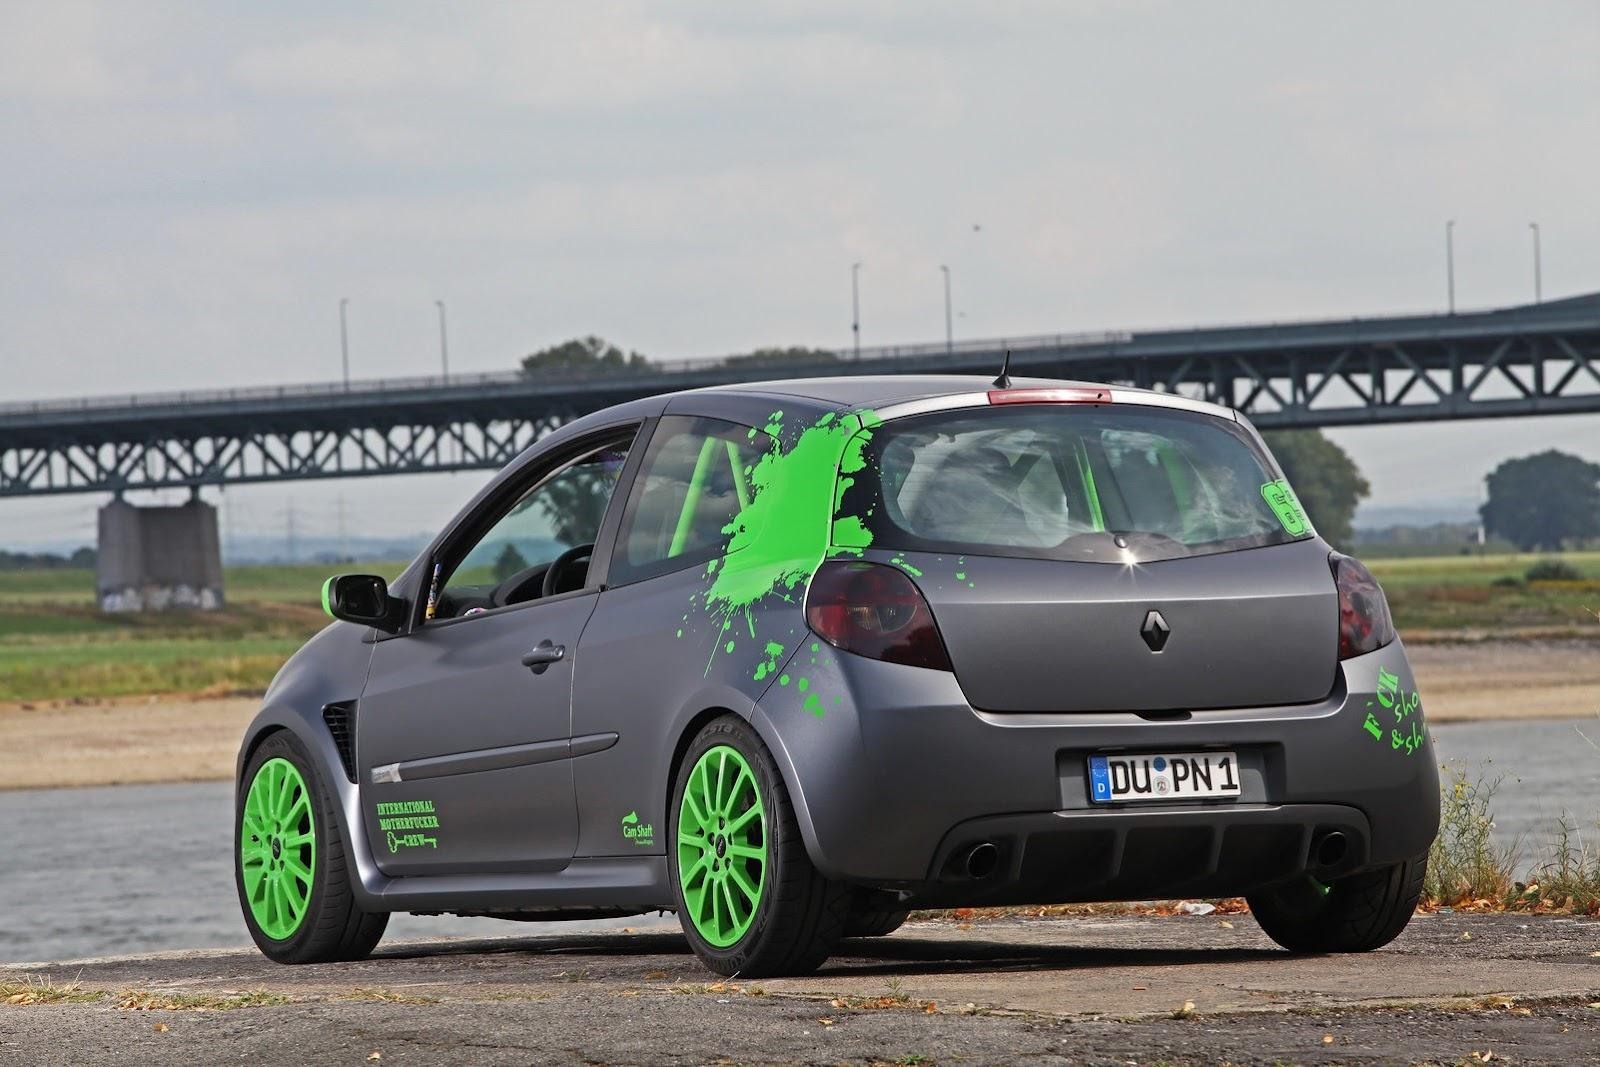 Renault clio rs by cam shaft car tuning styling